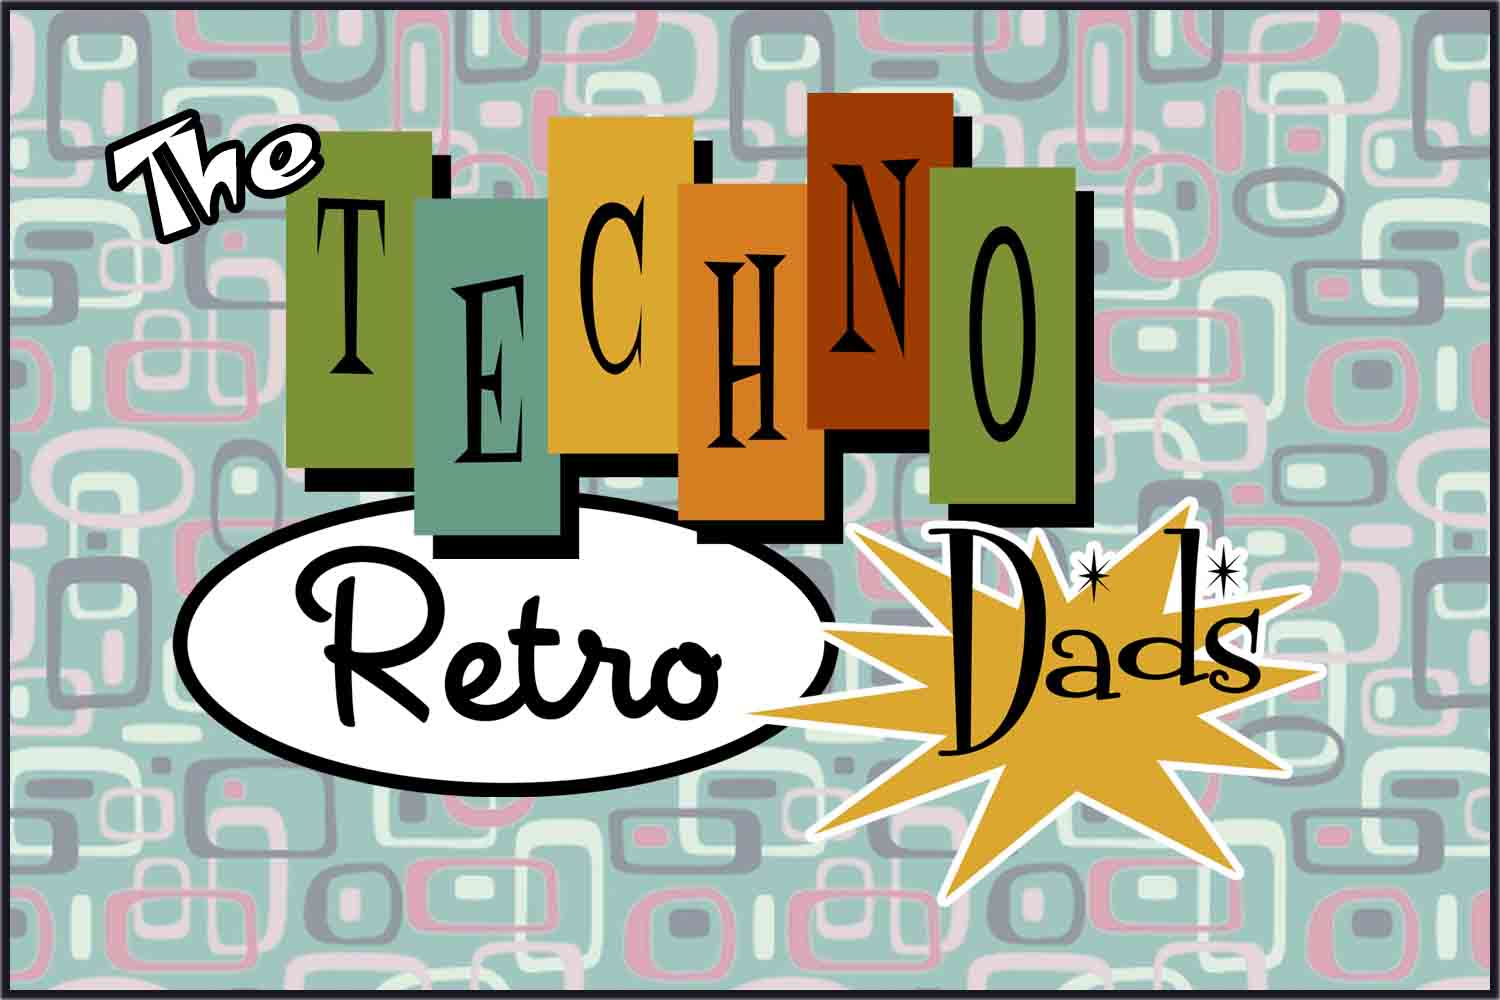 TechnoRetro Dads